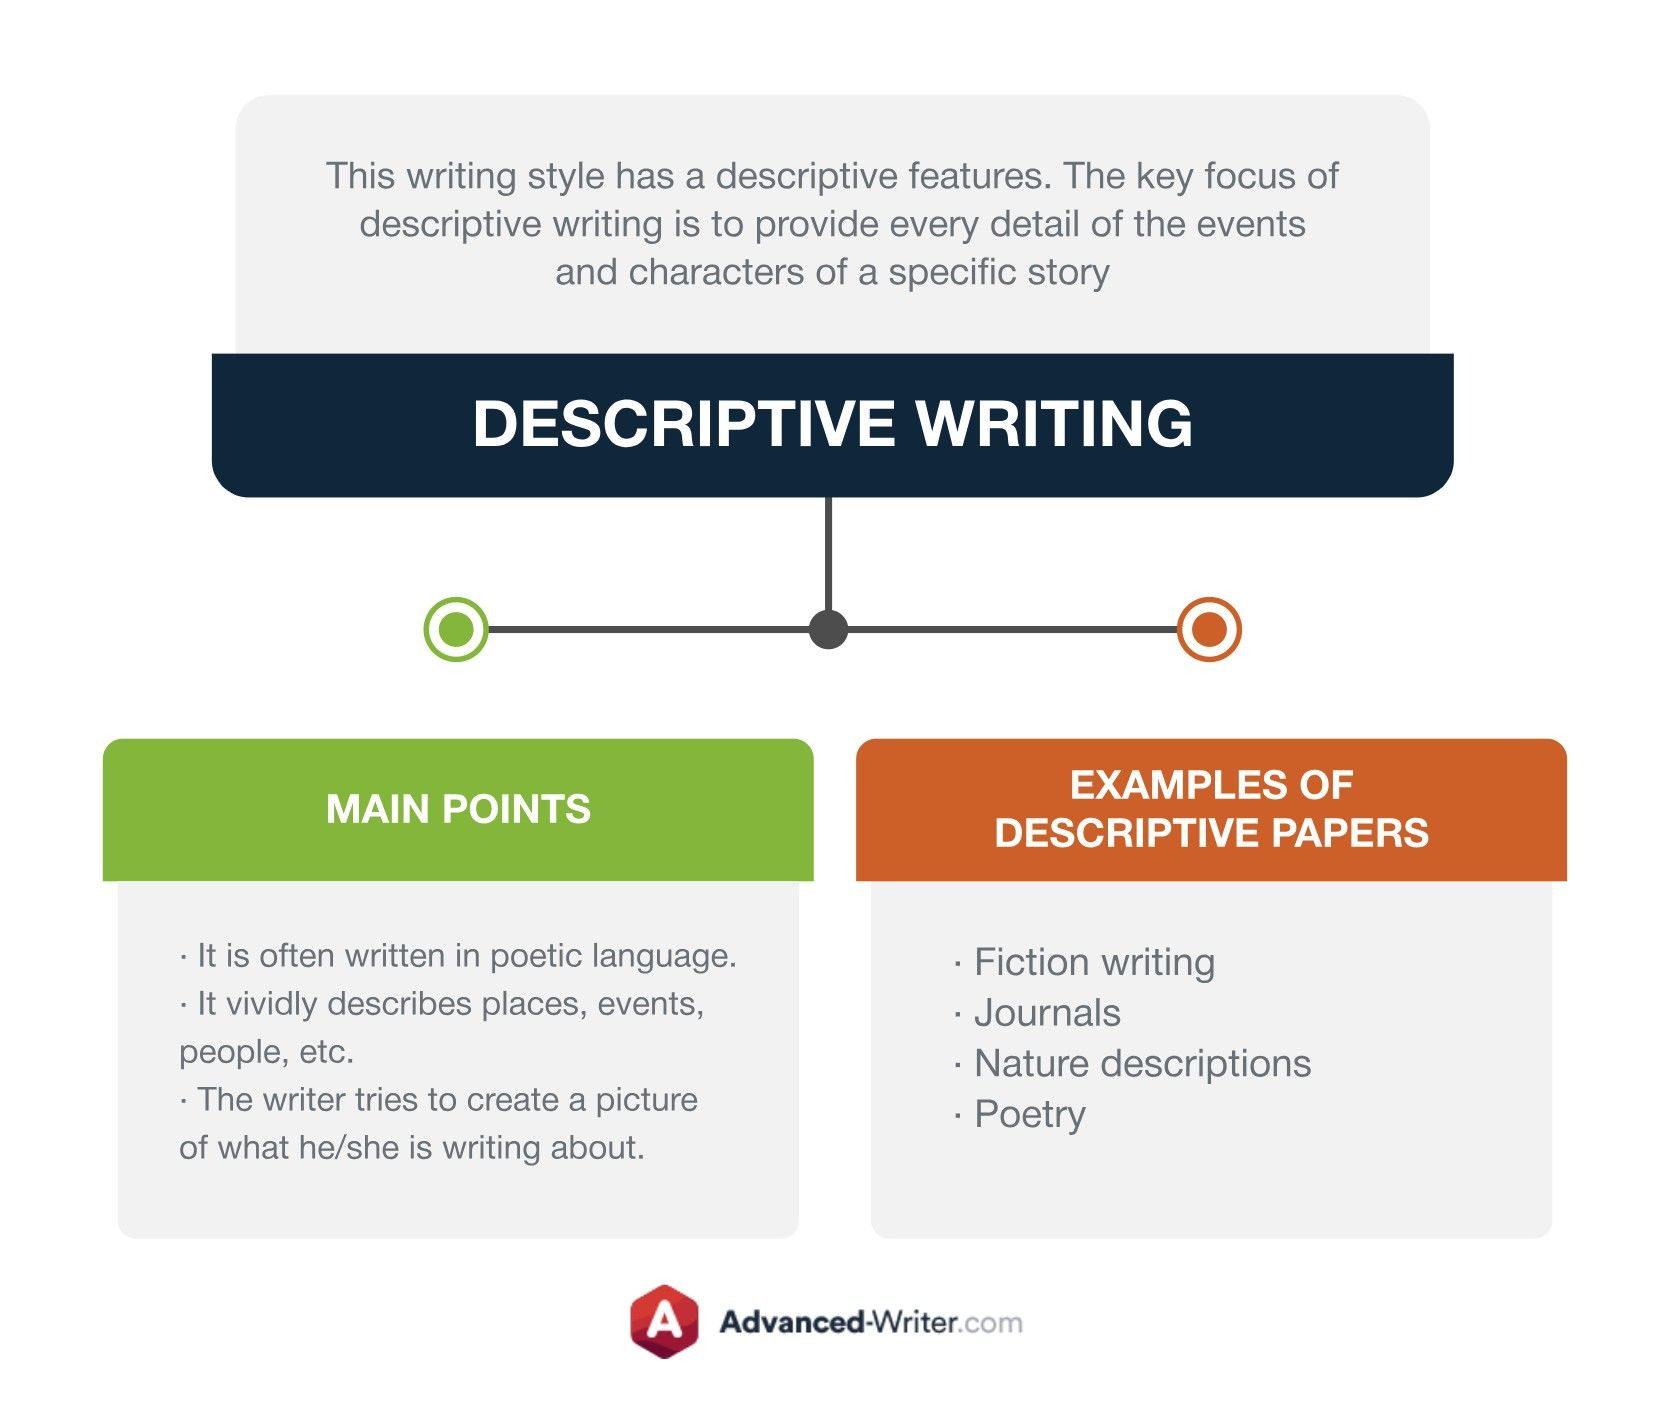 Writing Styles Types and Examples   Writing styles, Descriptive ...